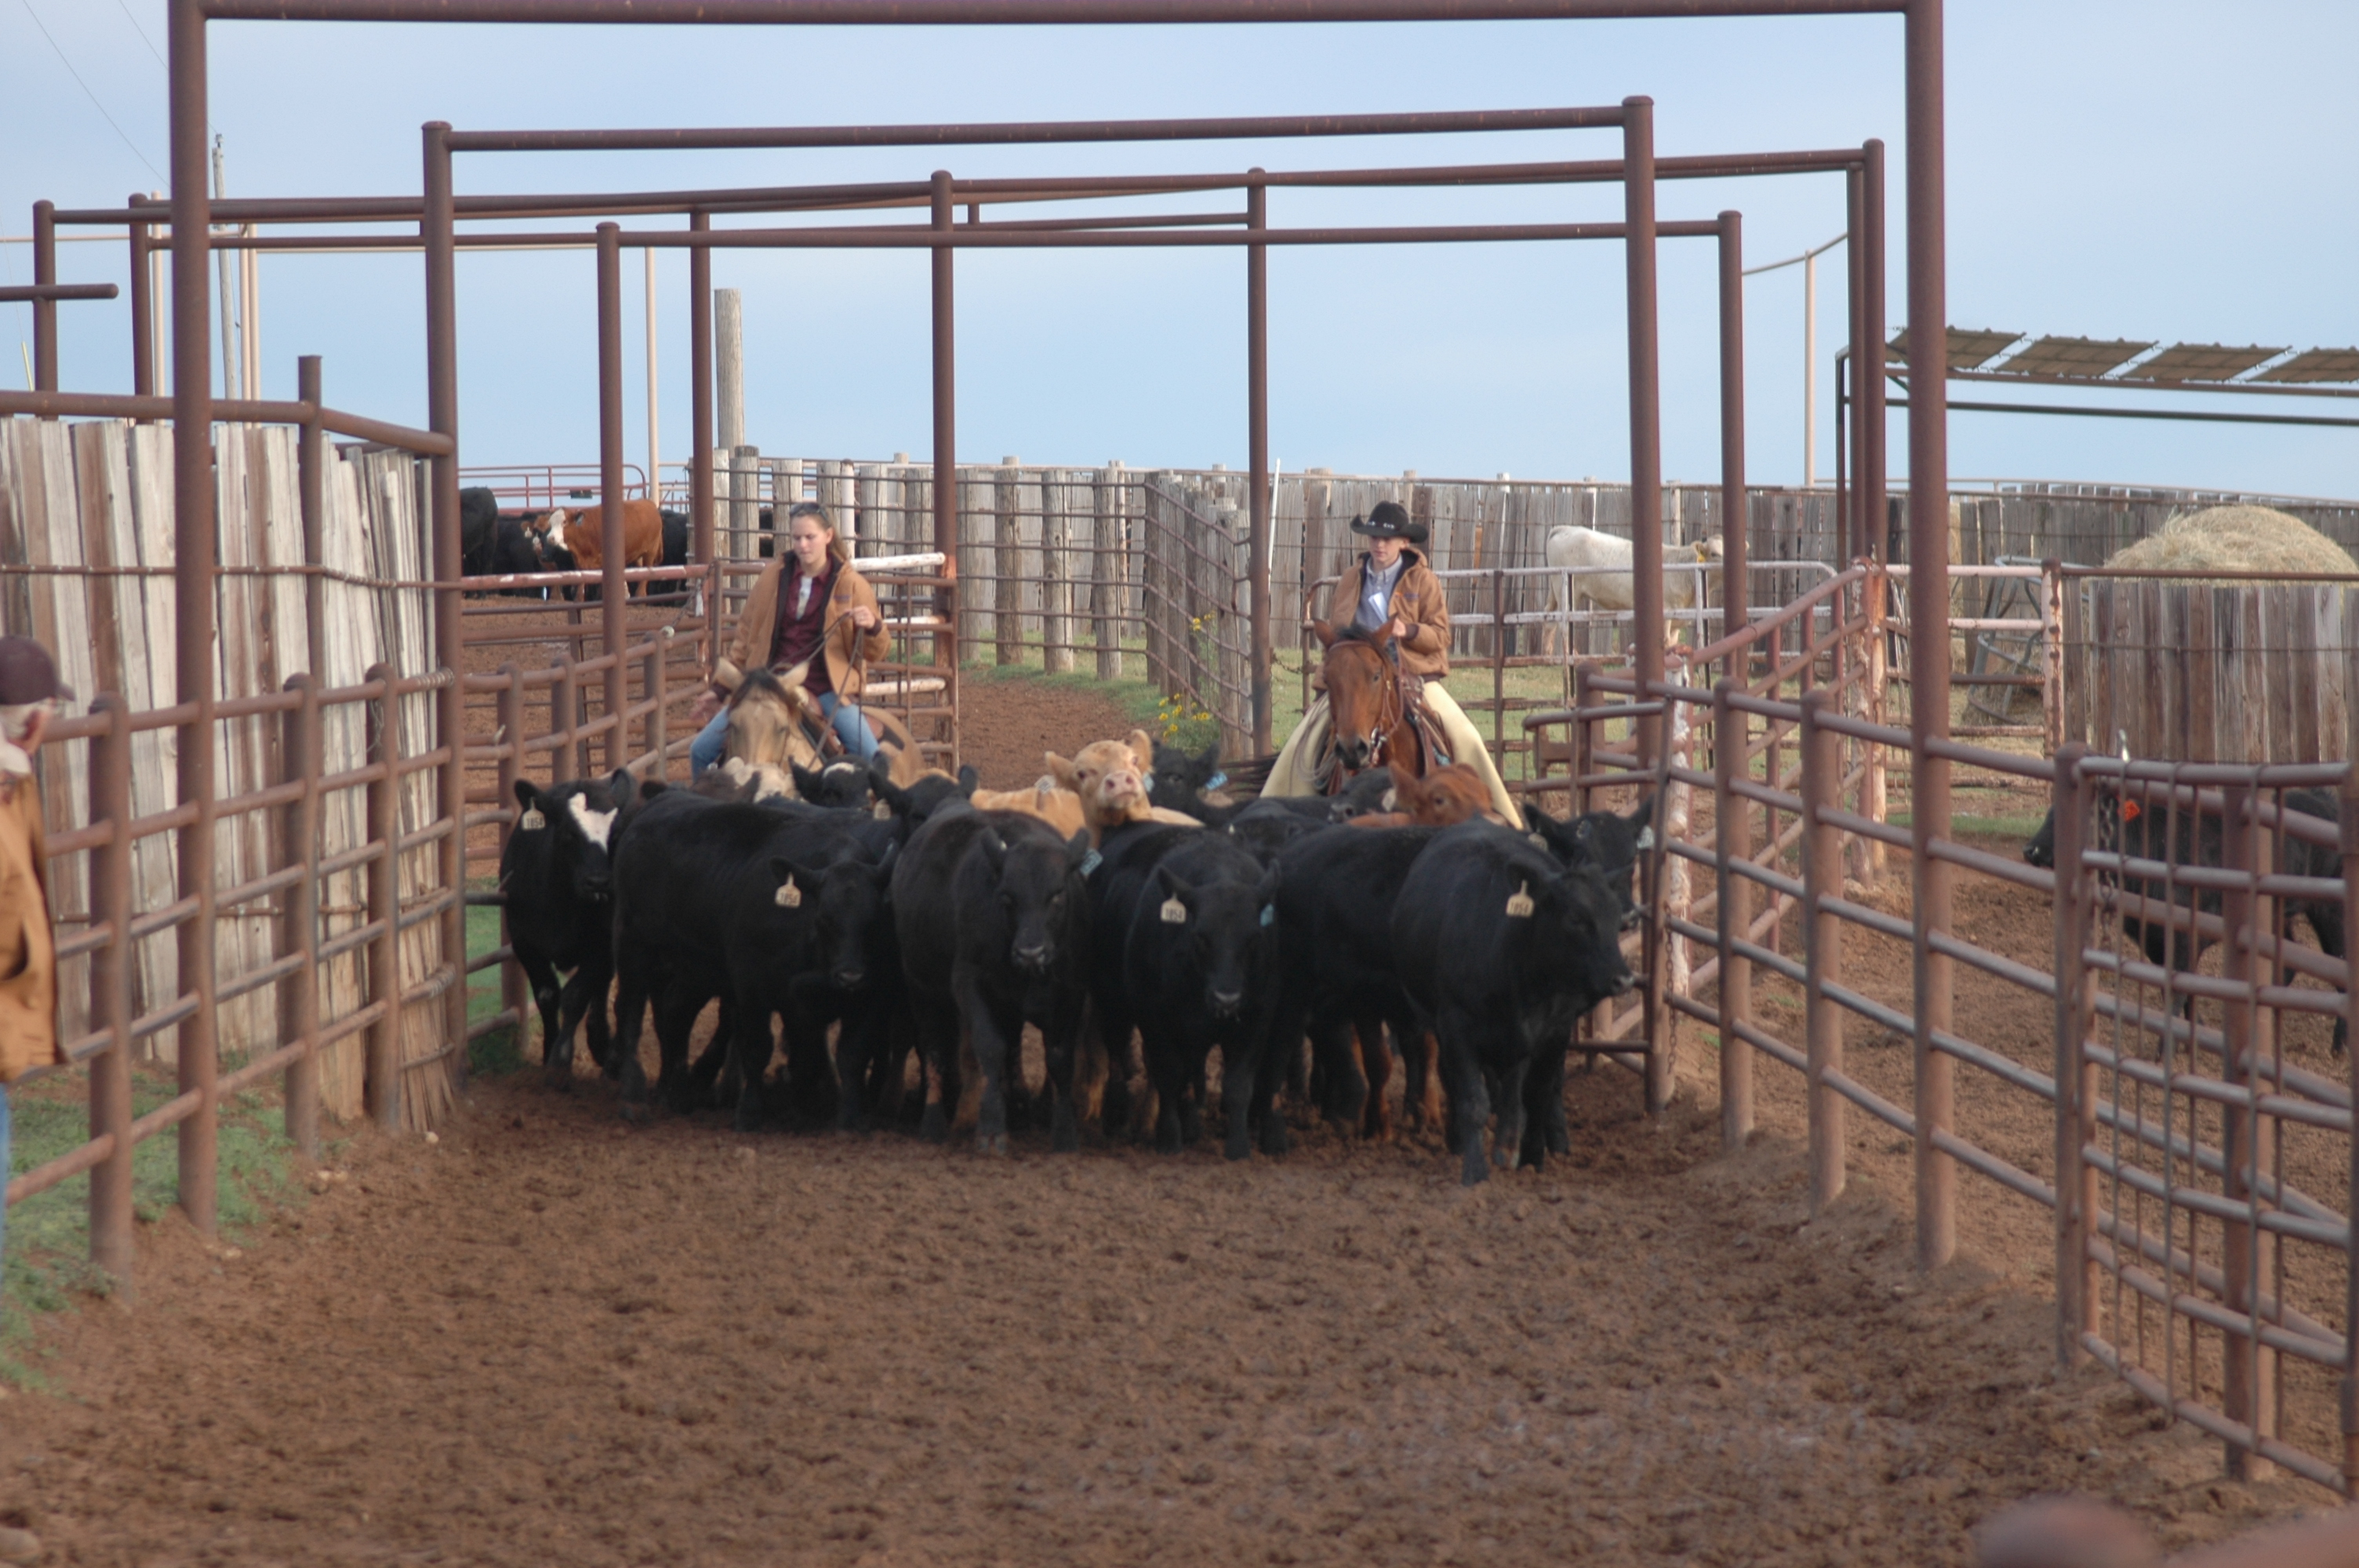 More tips on cattle handling